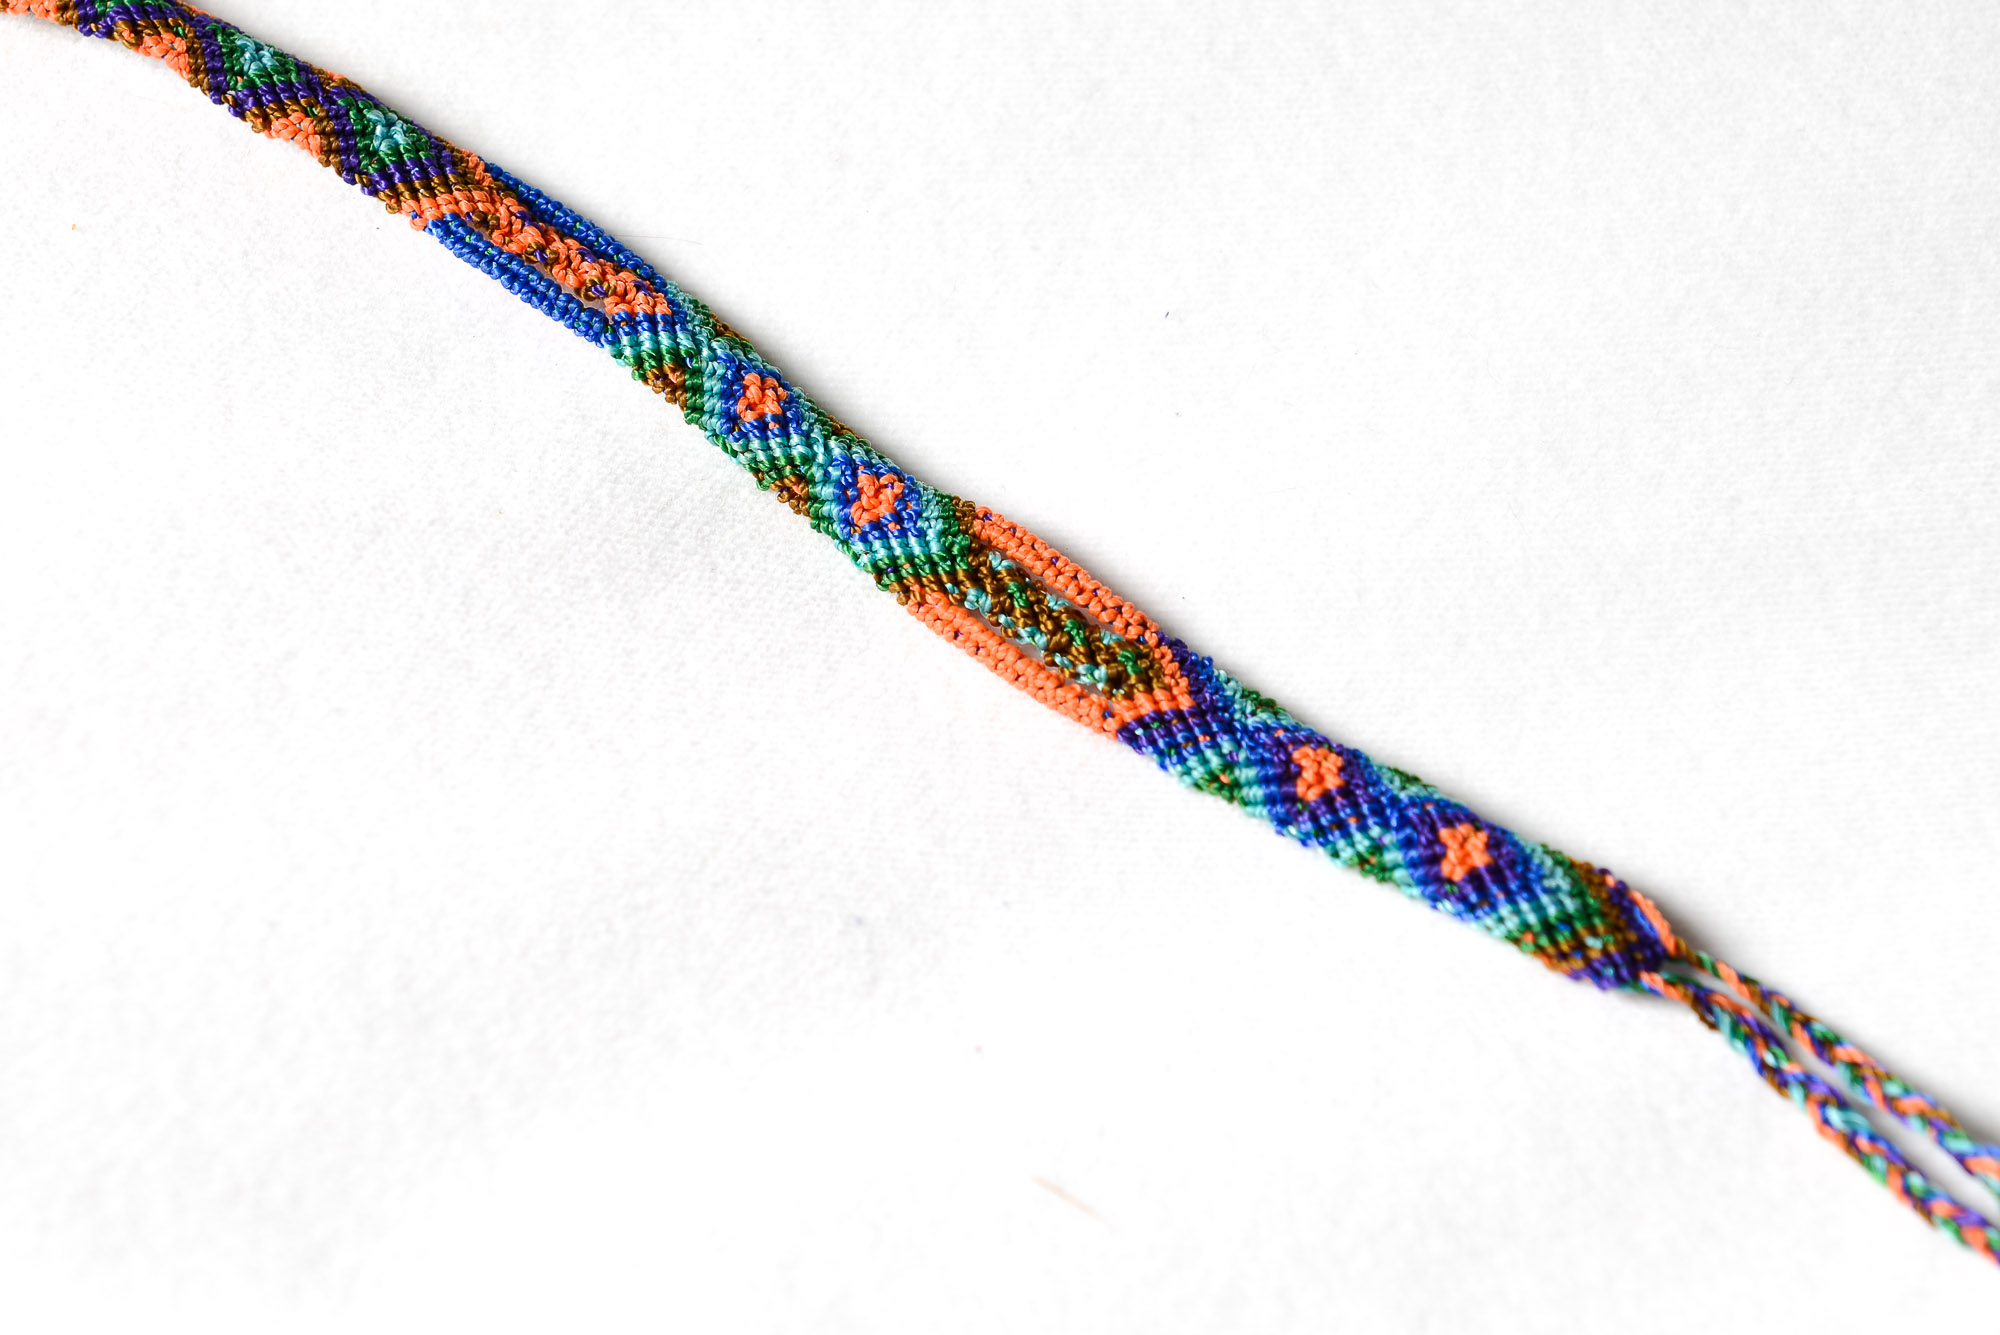 catcat in part up chevron pattern different thread your colors be a for to have and the like would choose as bracelets knot embroidery curious you his friendship forward could symmetric bracelet